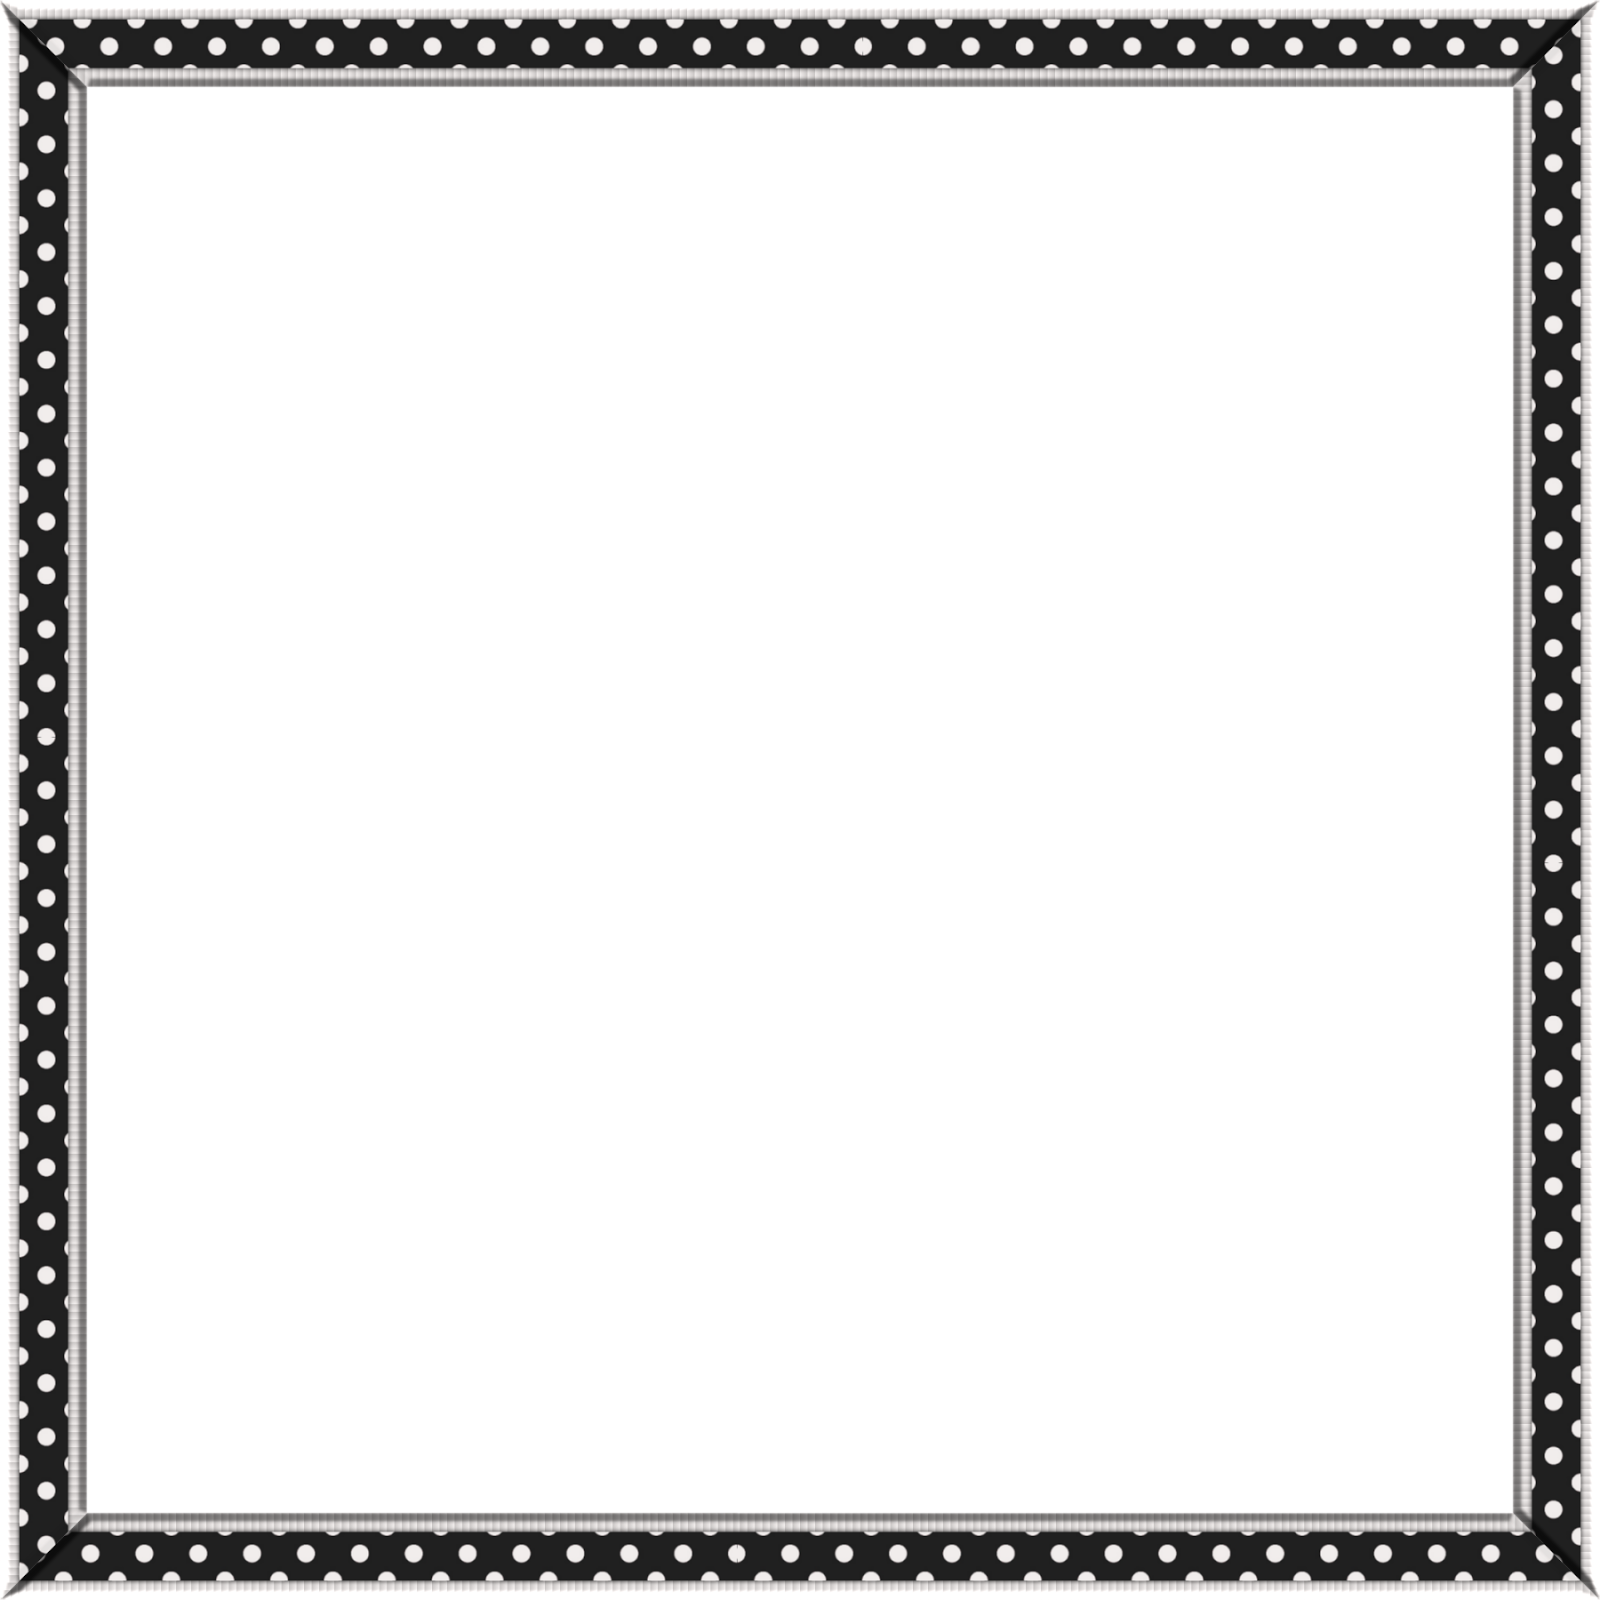 Thin Border Free Printable Frames Borders And Labels